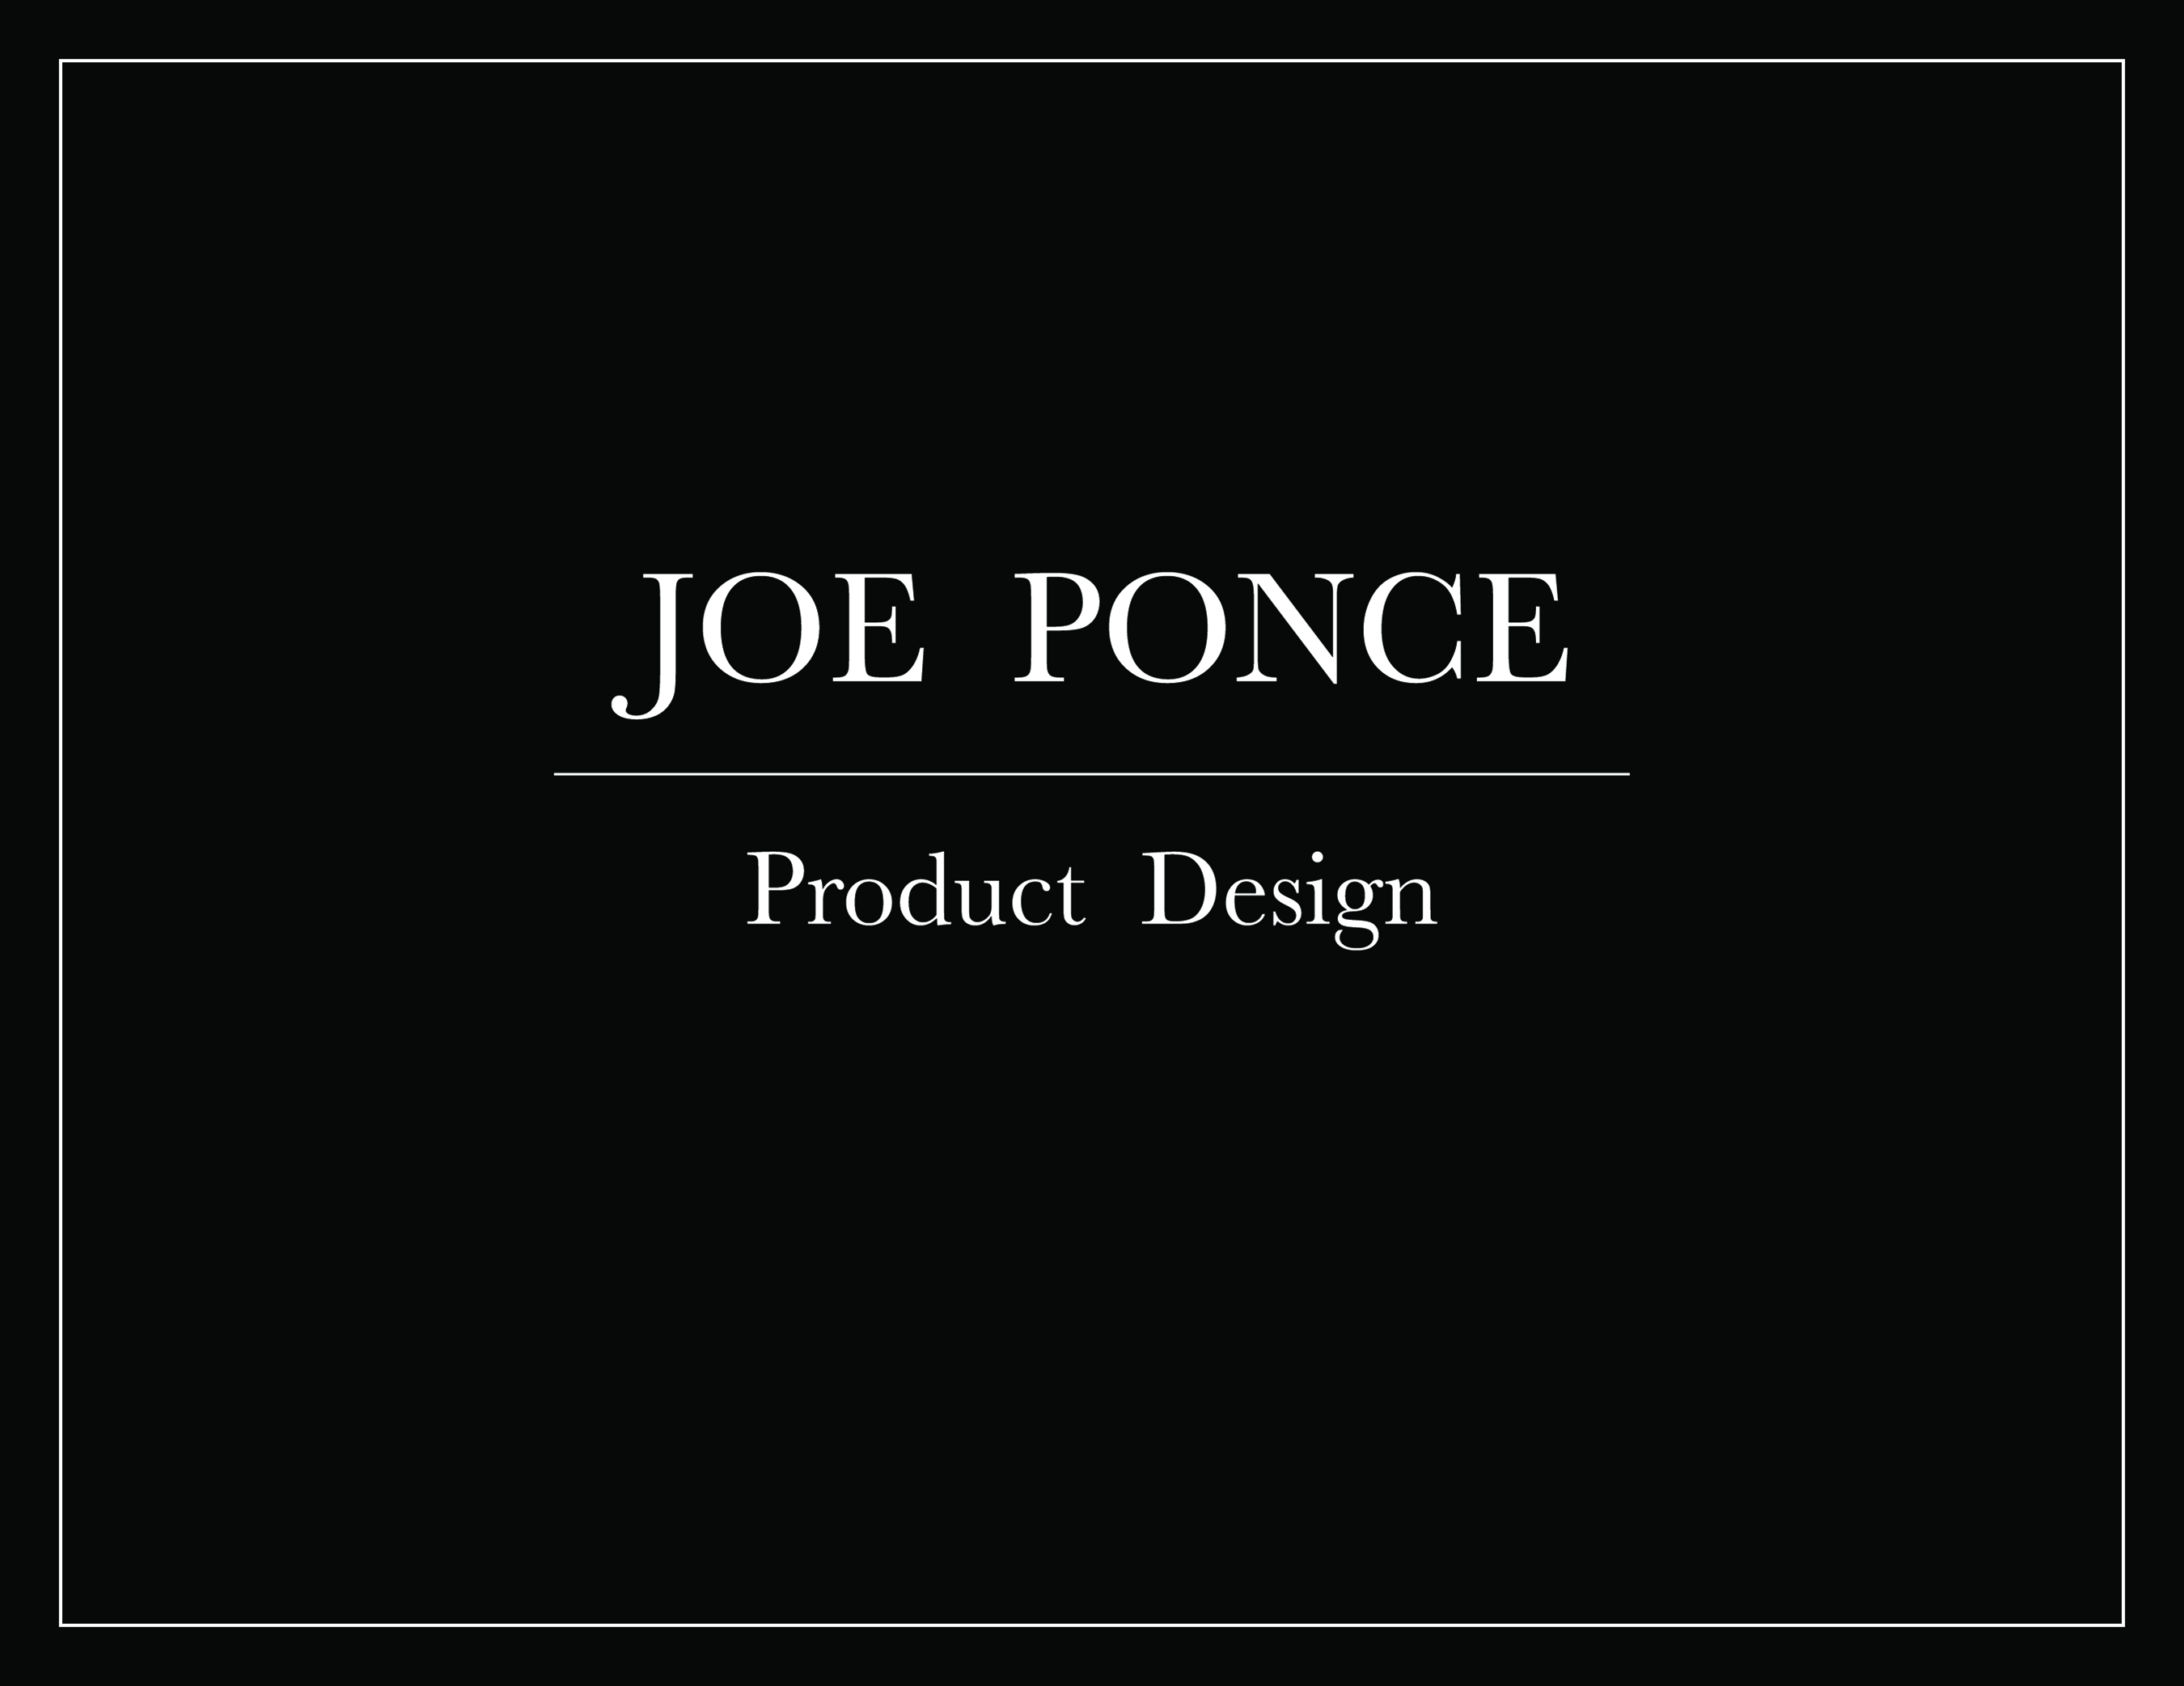 Joe Ponce Product Design